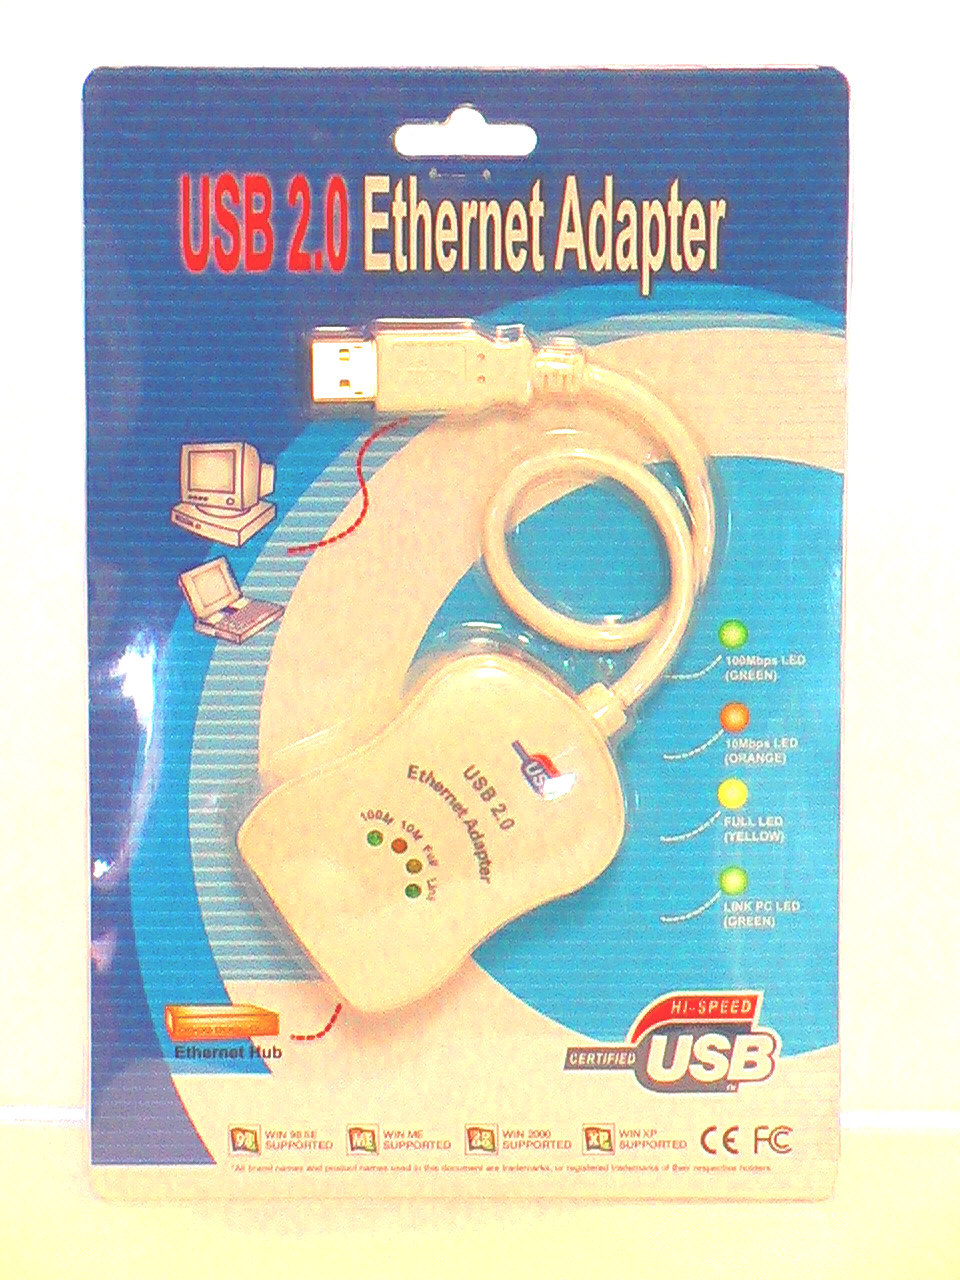 USB 2.0 Ethernet Adapter